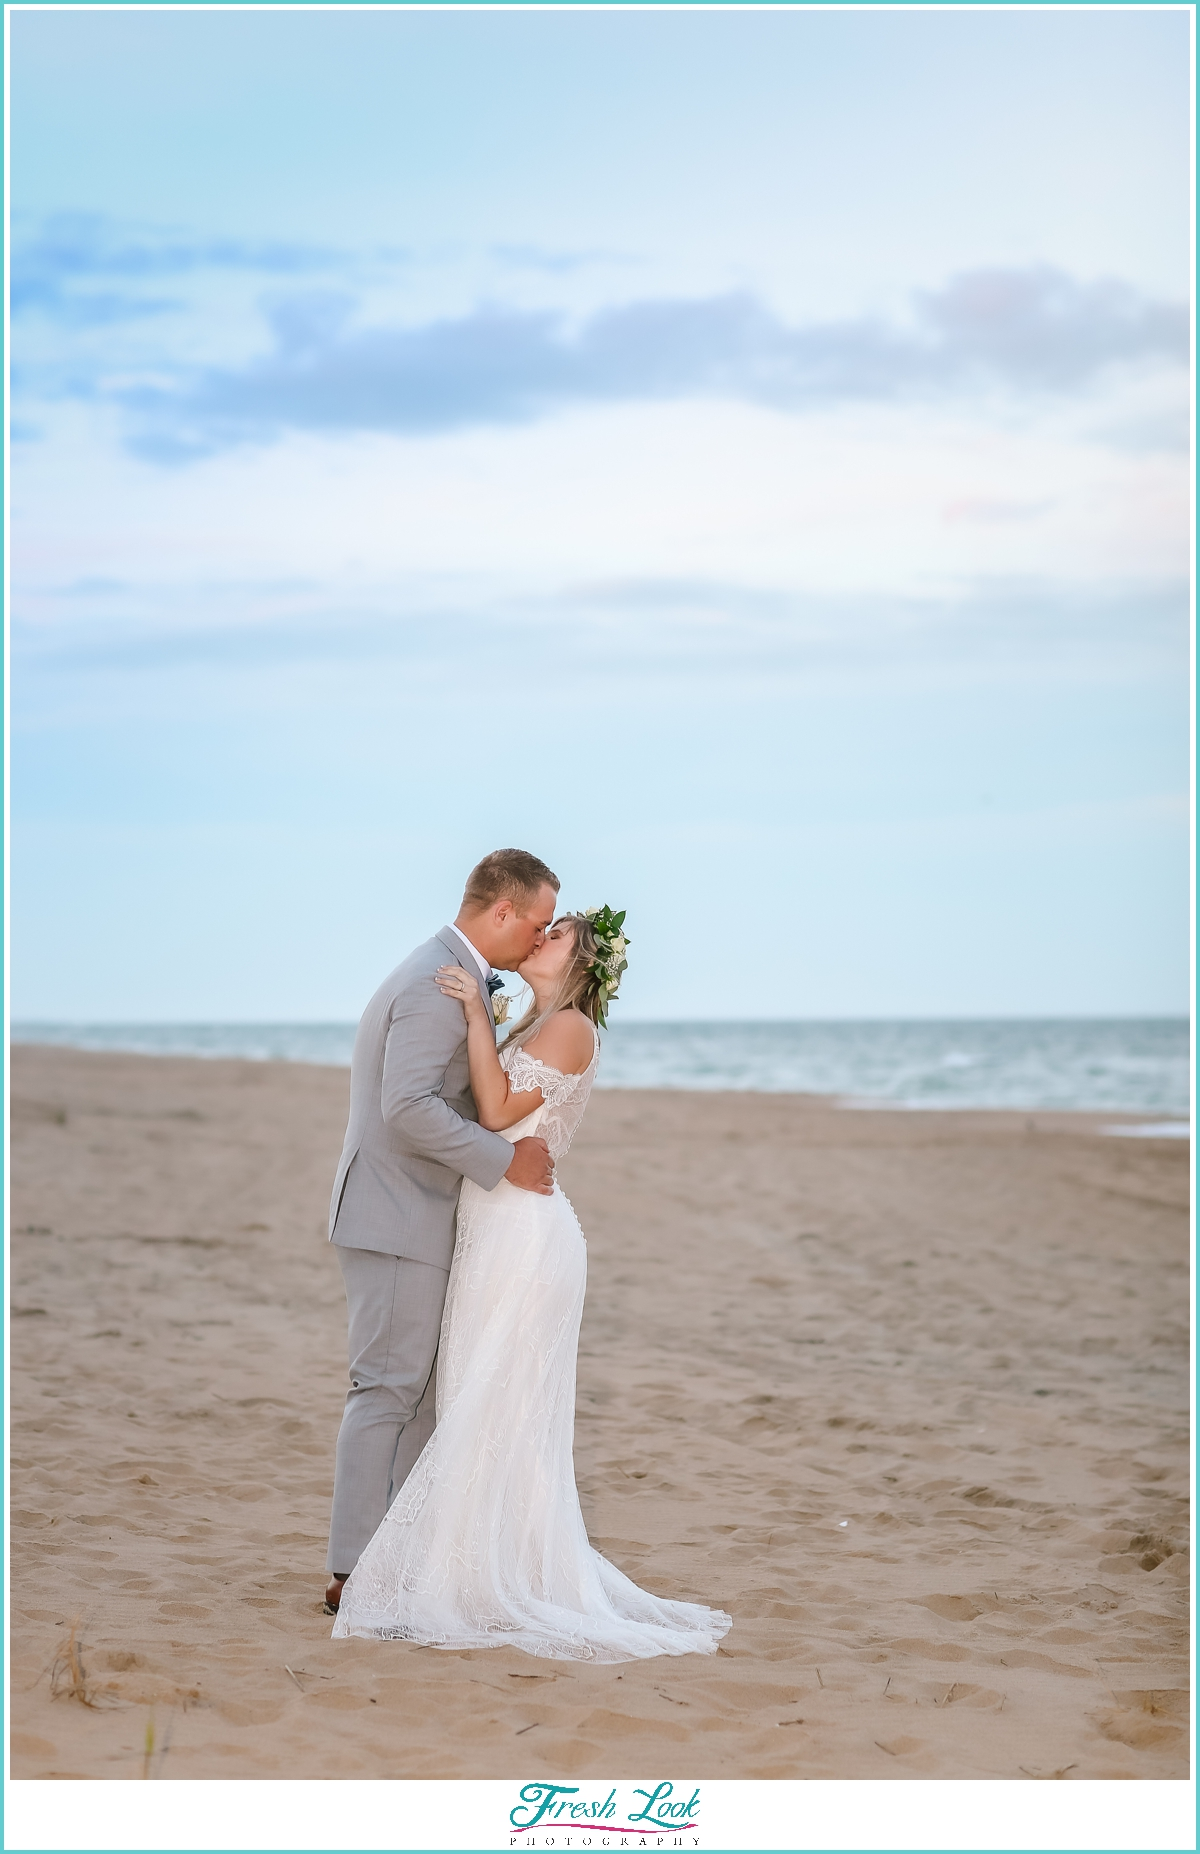 romantic beach wedding kiss